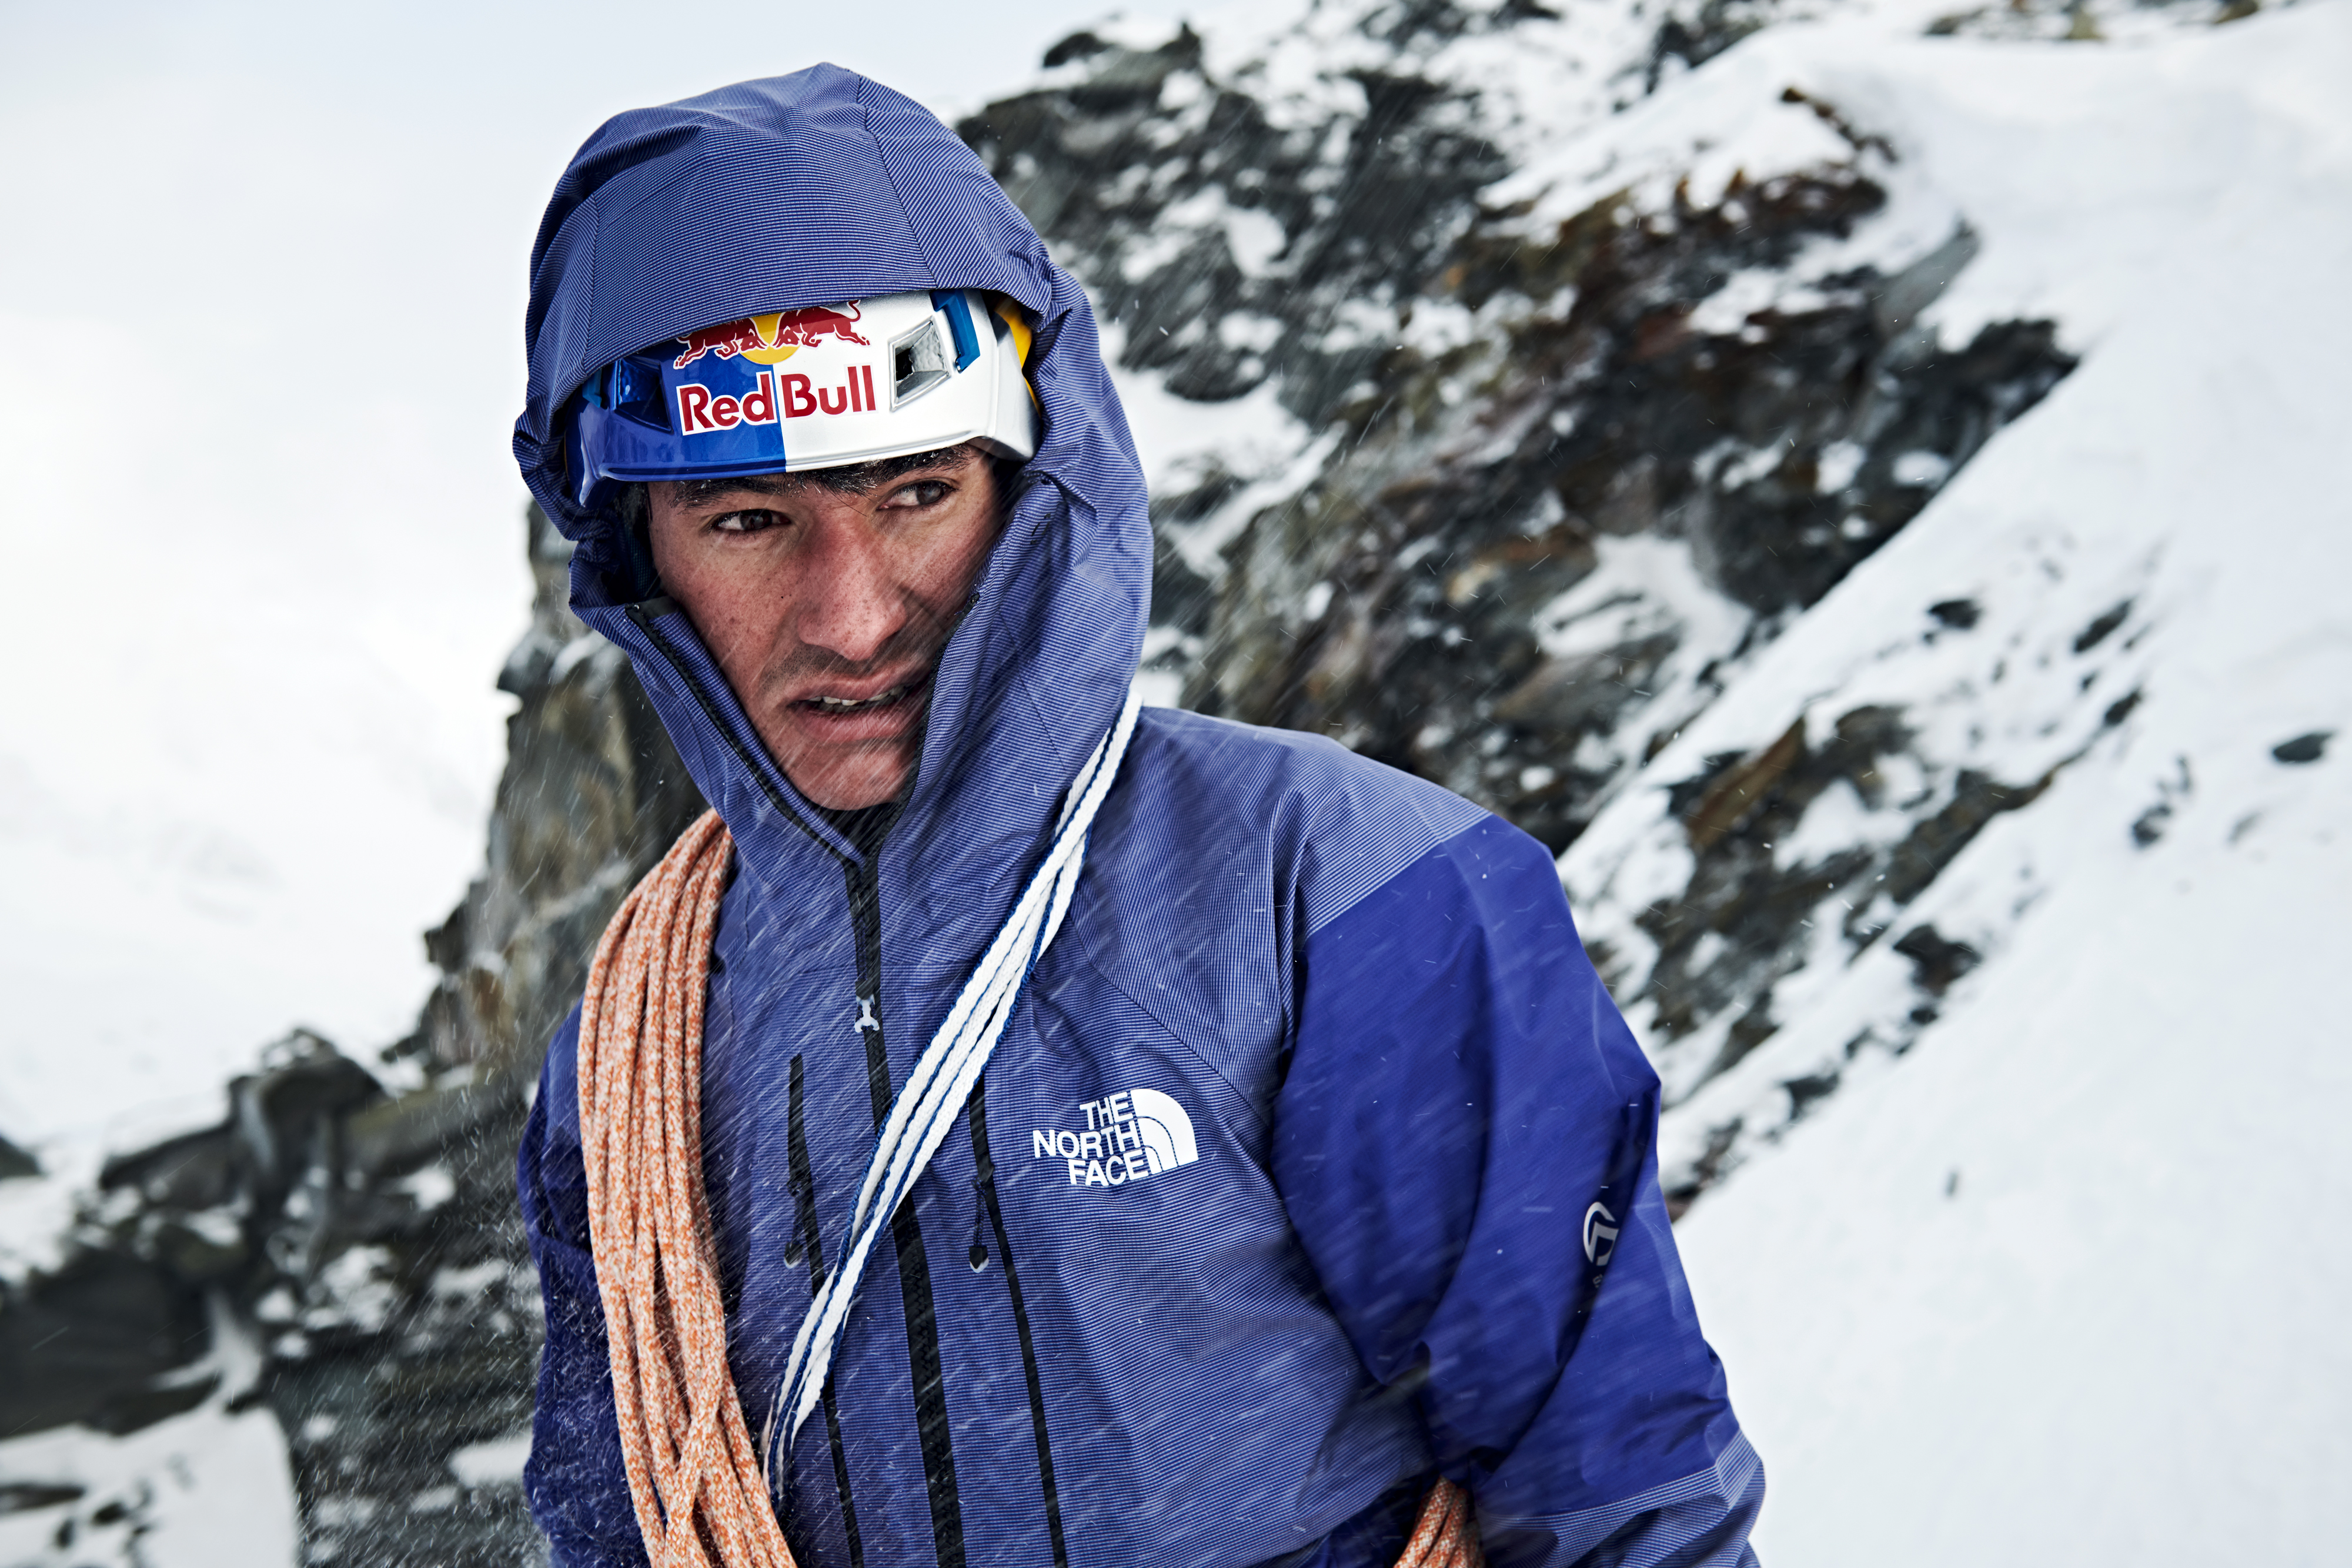 David Lama joins The North Face's global athlete team